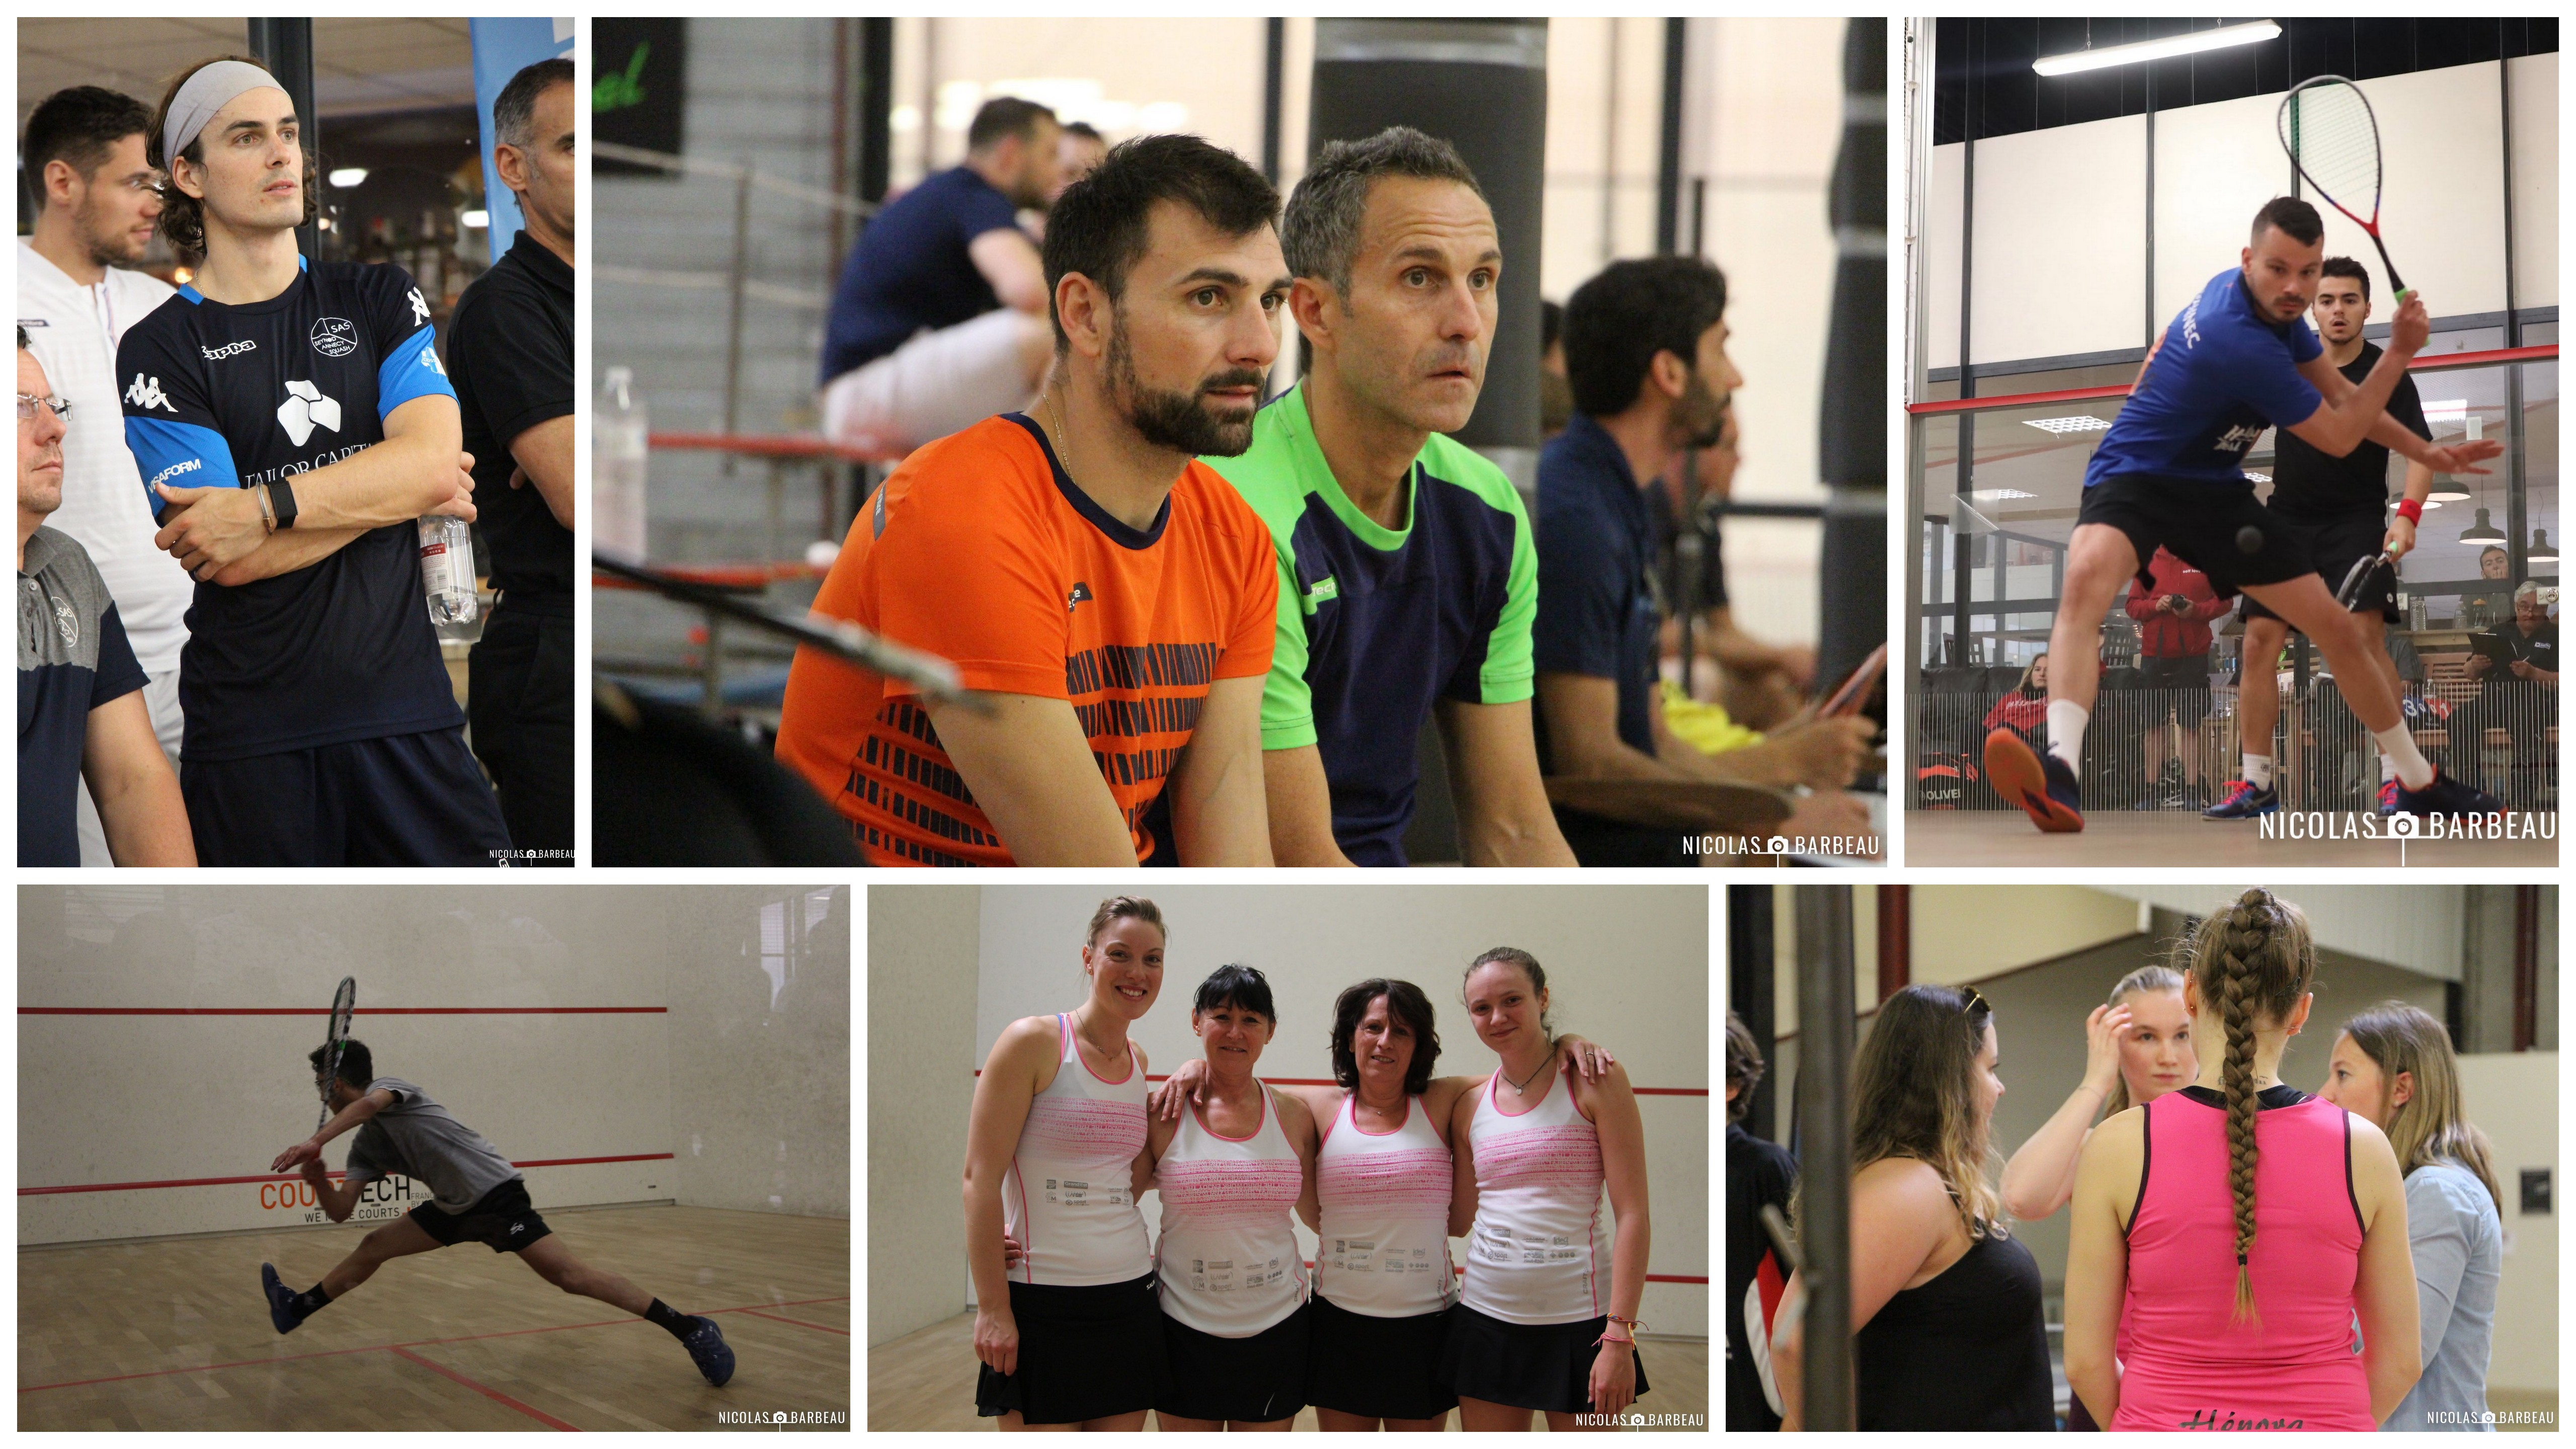 PLAYOFFS INTERCLUBS : LES FINALES DE N2/N3 EN DIRECT (11h40)